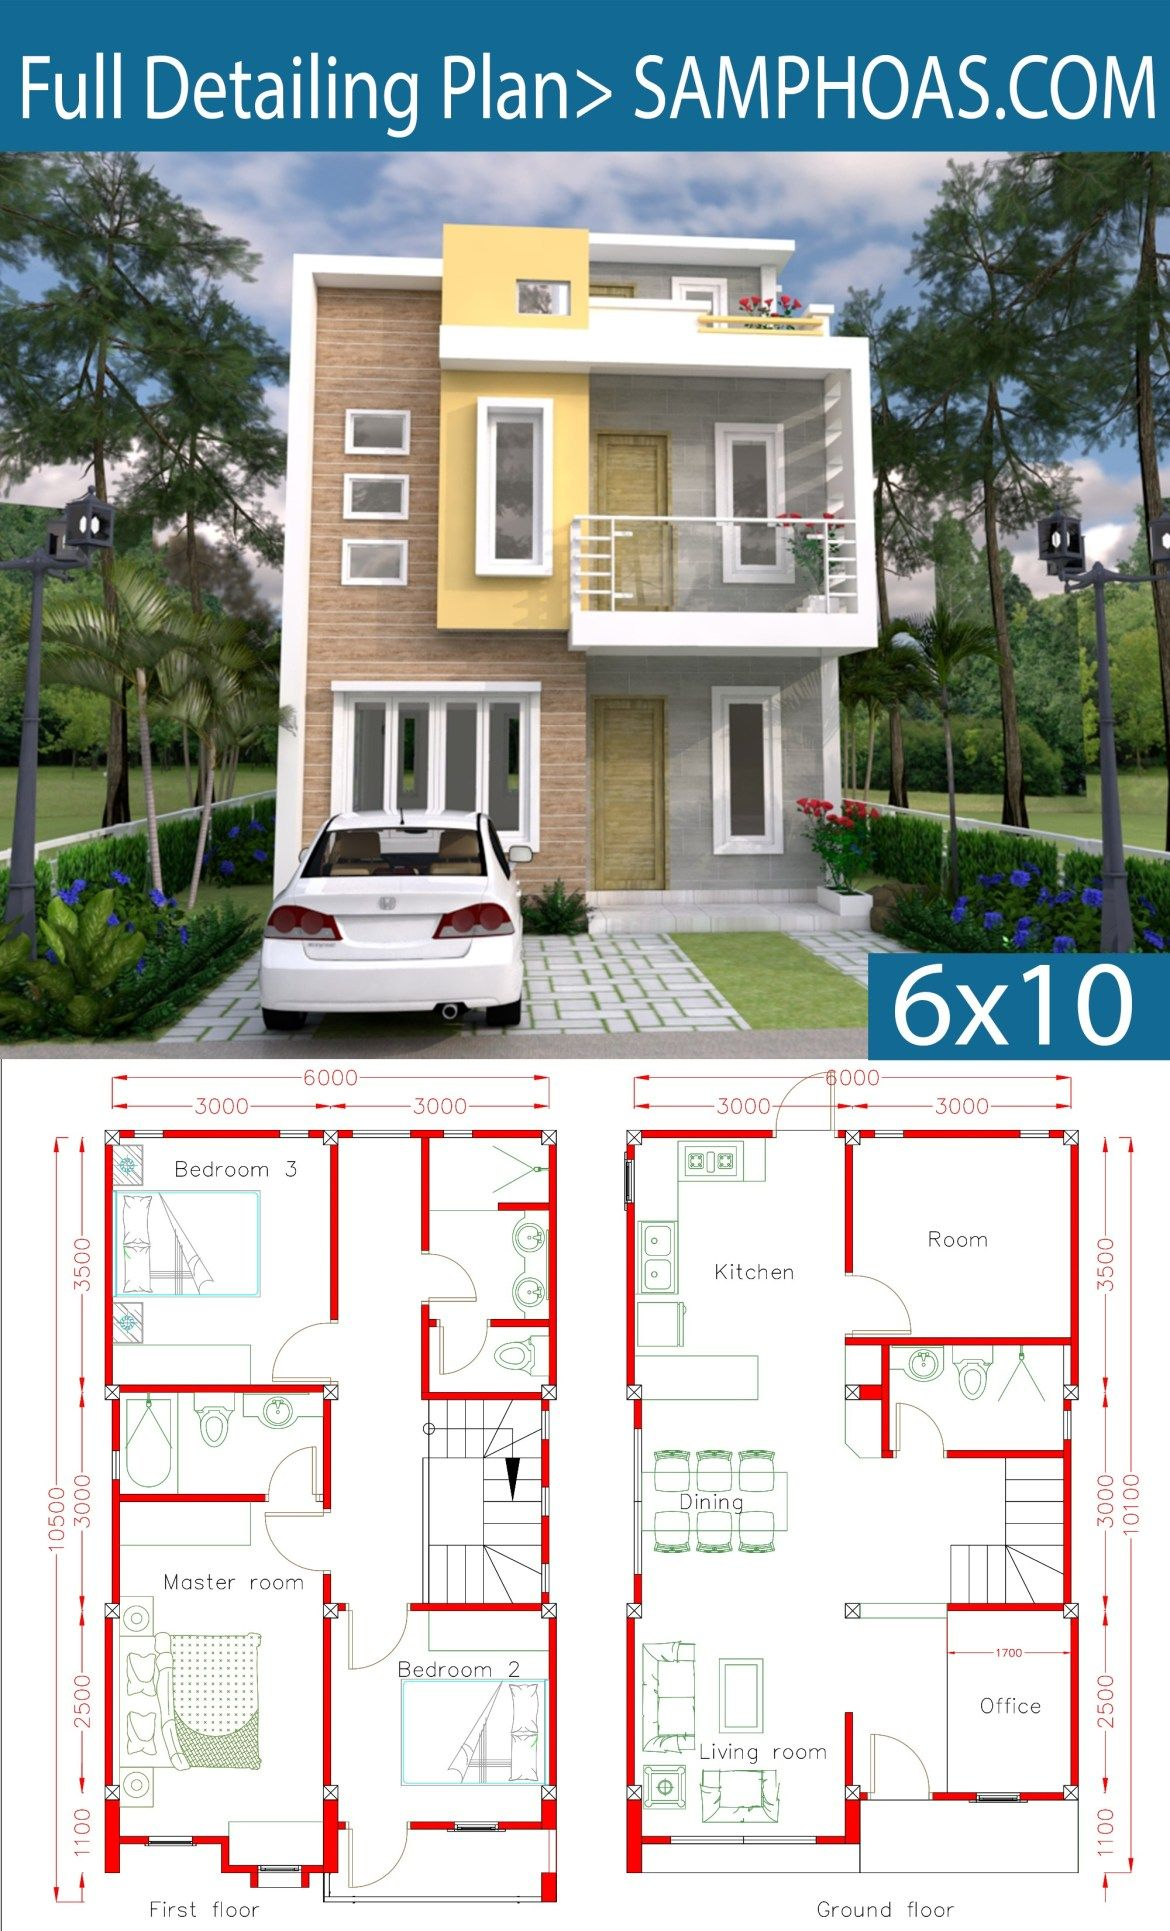 Sketchup Home Design Plan 6x10m With 4 Rooms Samphoas Plansearch Architectural House Plans Model House Plan House Layout Plans